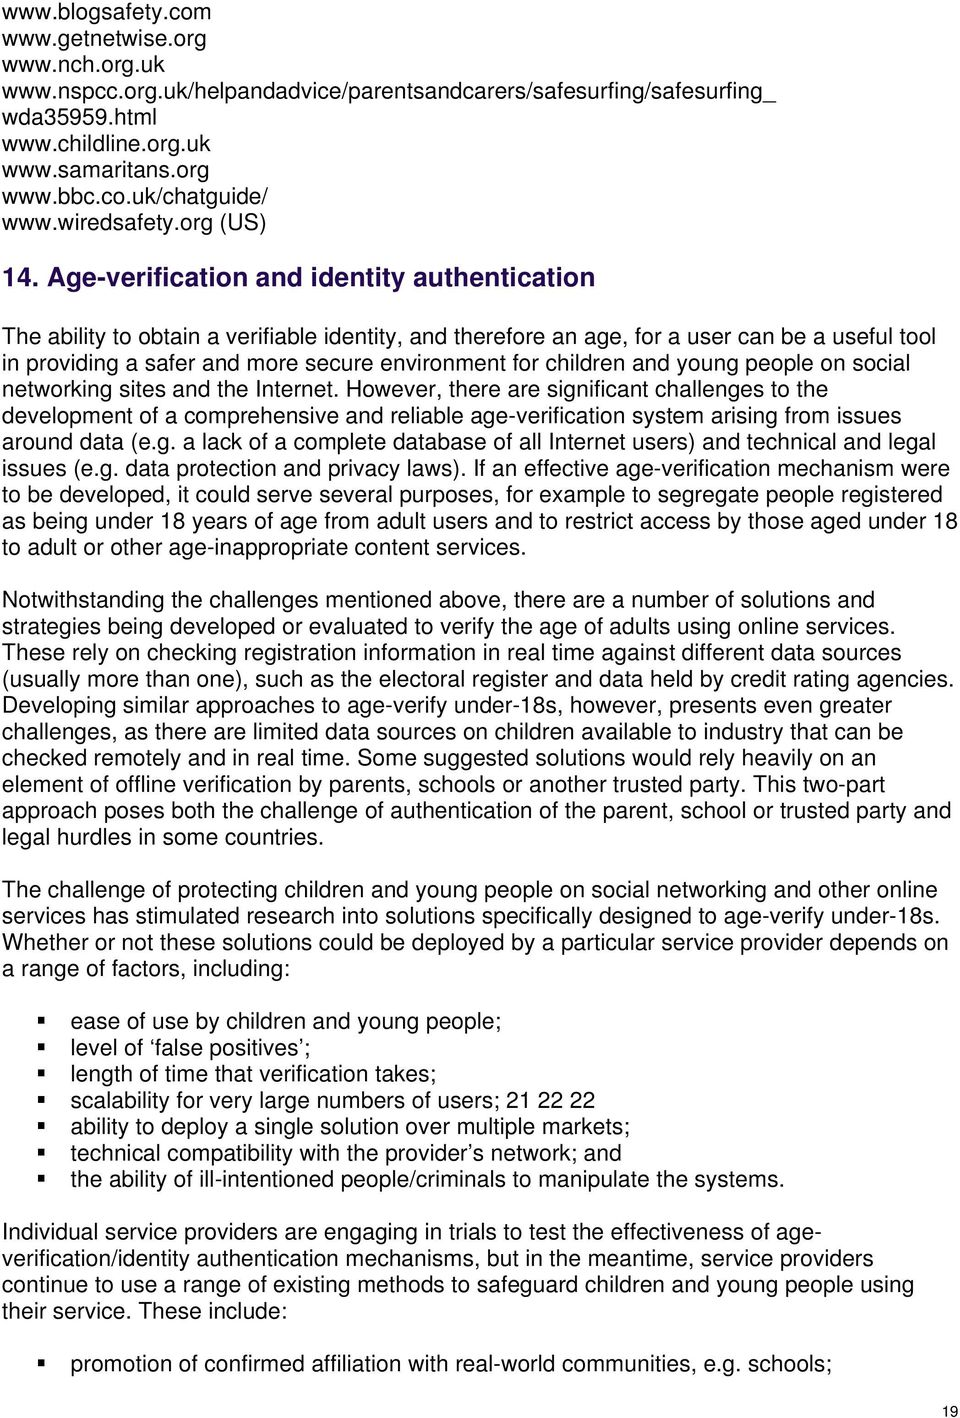 Age-verification and identity authentication The ability to obtain a verifiable identity, and therefore an age, for a user can be a useful tool in providing a safer and more secure environment for